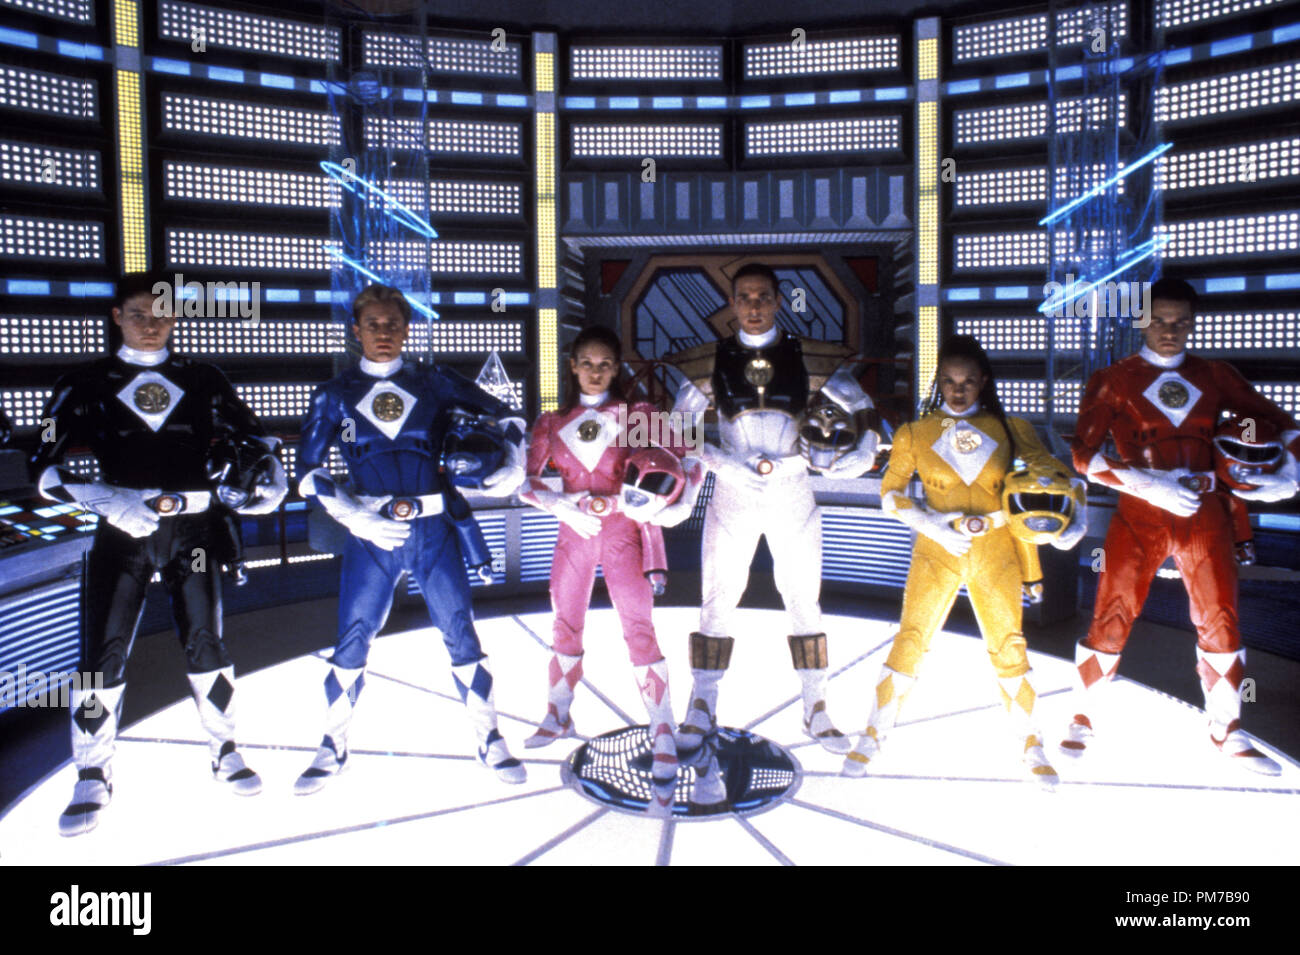 Film Still from 'Mighty Morphin Power Rangers: The Movie' Johnny Yong Bosch, David Yost, Amy Jo Johnson, Jason David Frank, Karan Ashley, Steve Cardenas © 1995 20th Century Fox Photo Credit: Jim Townley  File Reference # 31043216THA  For Editorial Use Only - All Rights Reserved - Stock Image